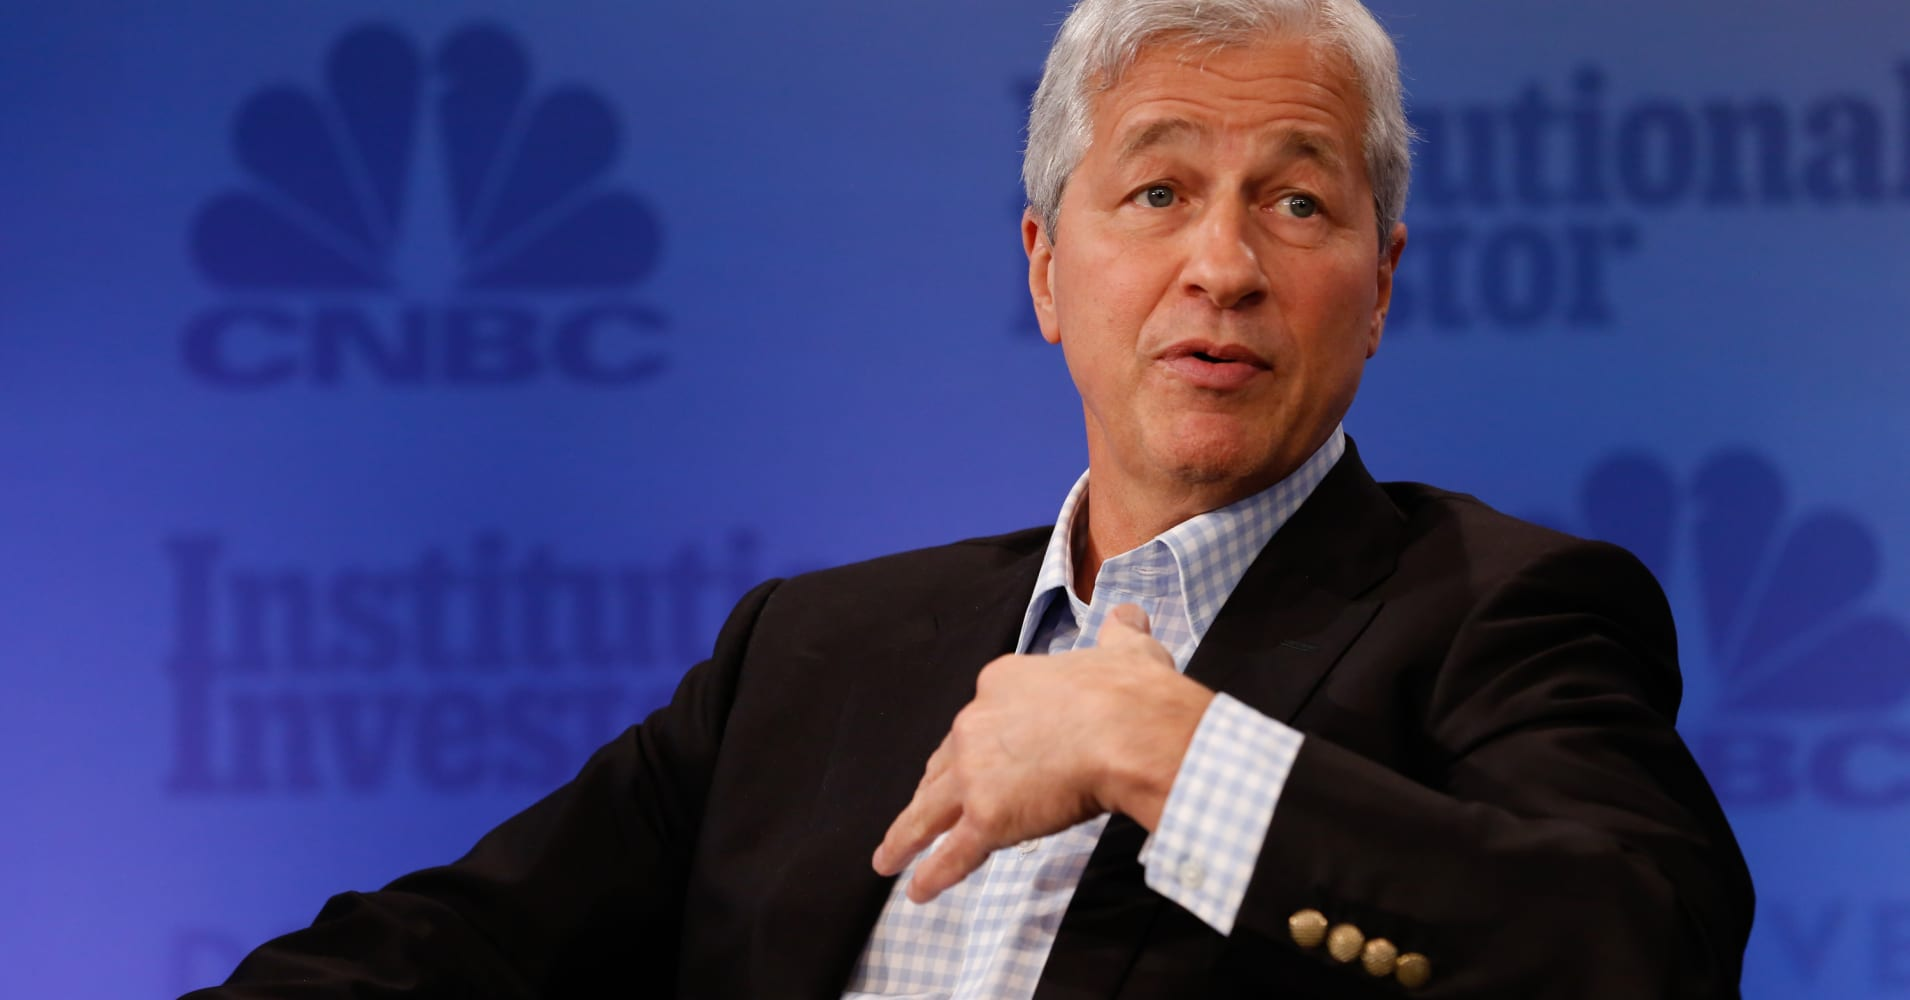 Jamie Dimon: Trump's trade policy is a fly in the ointment that could end the economic recovery